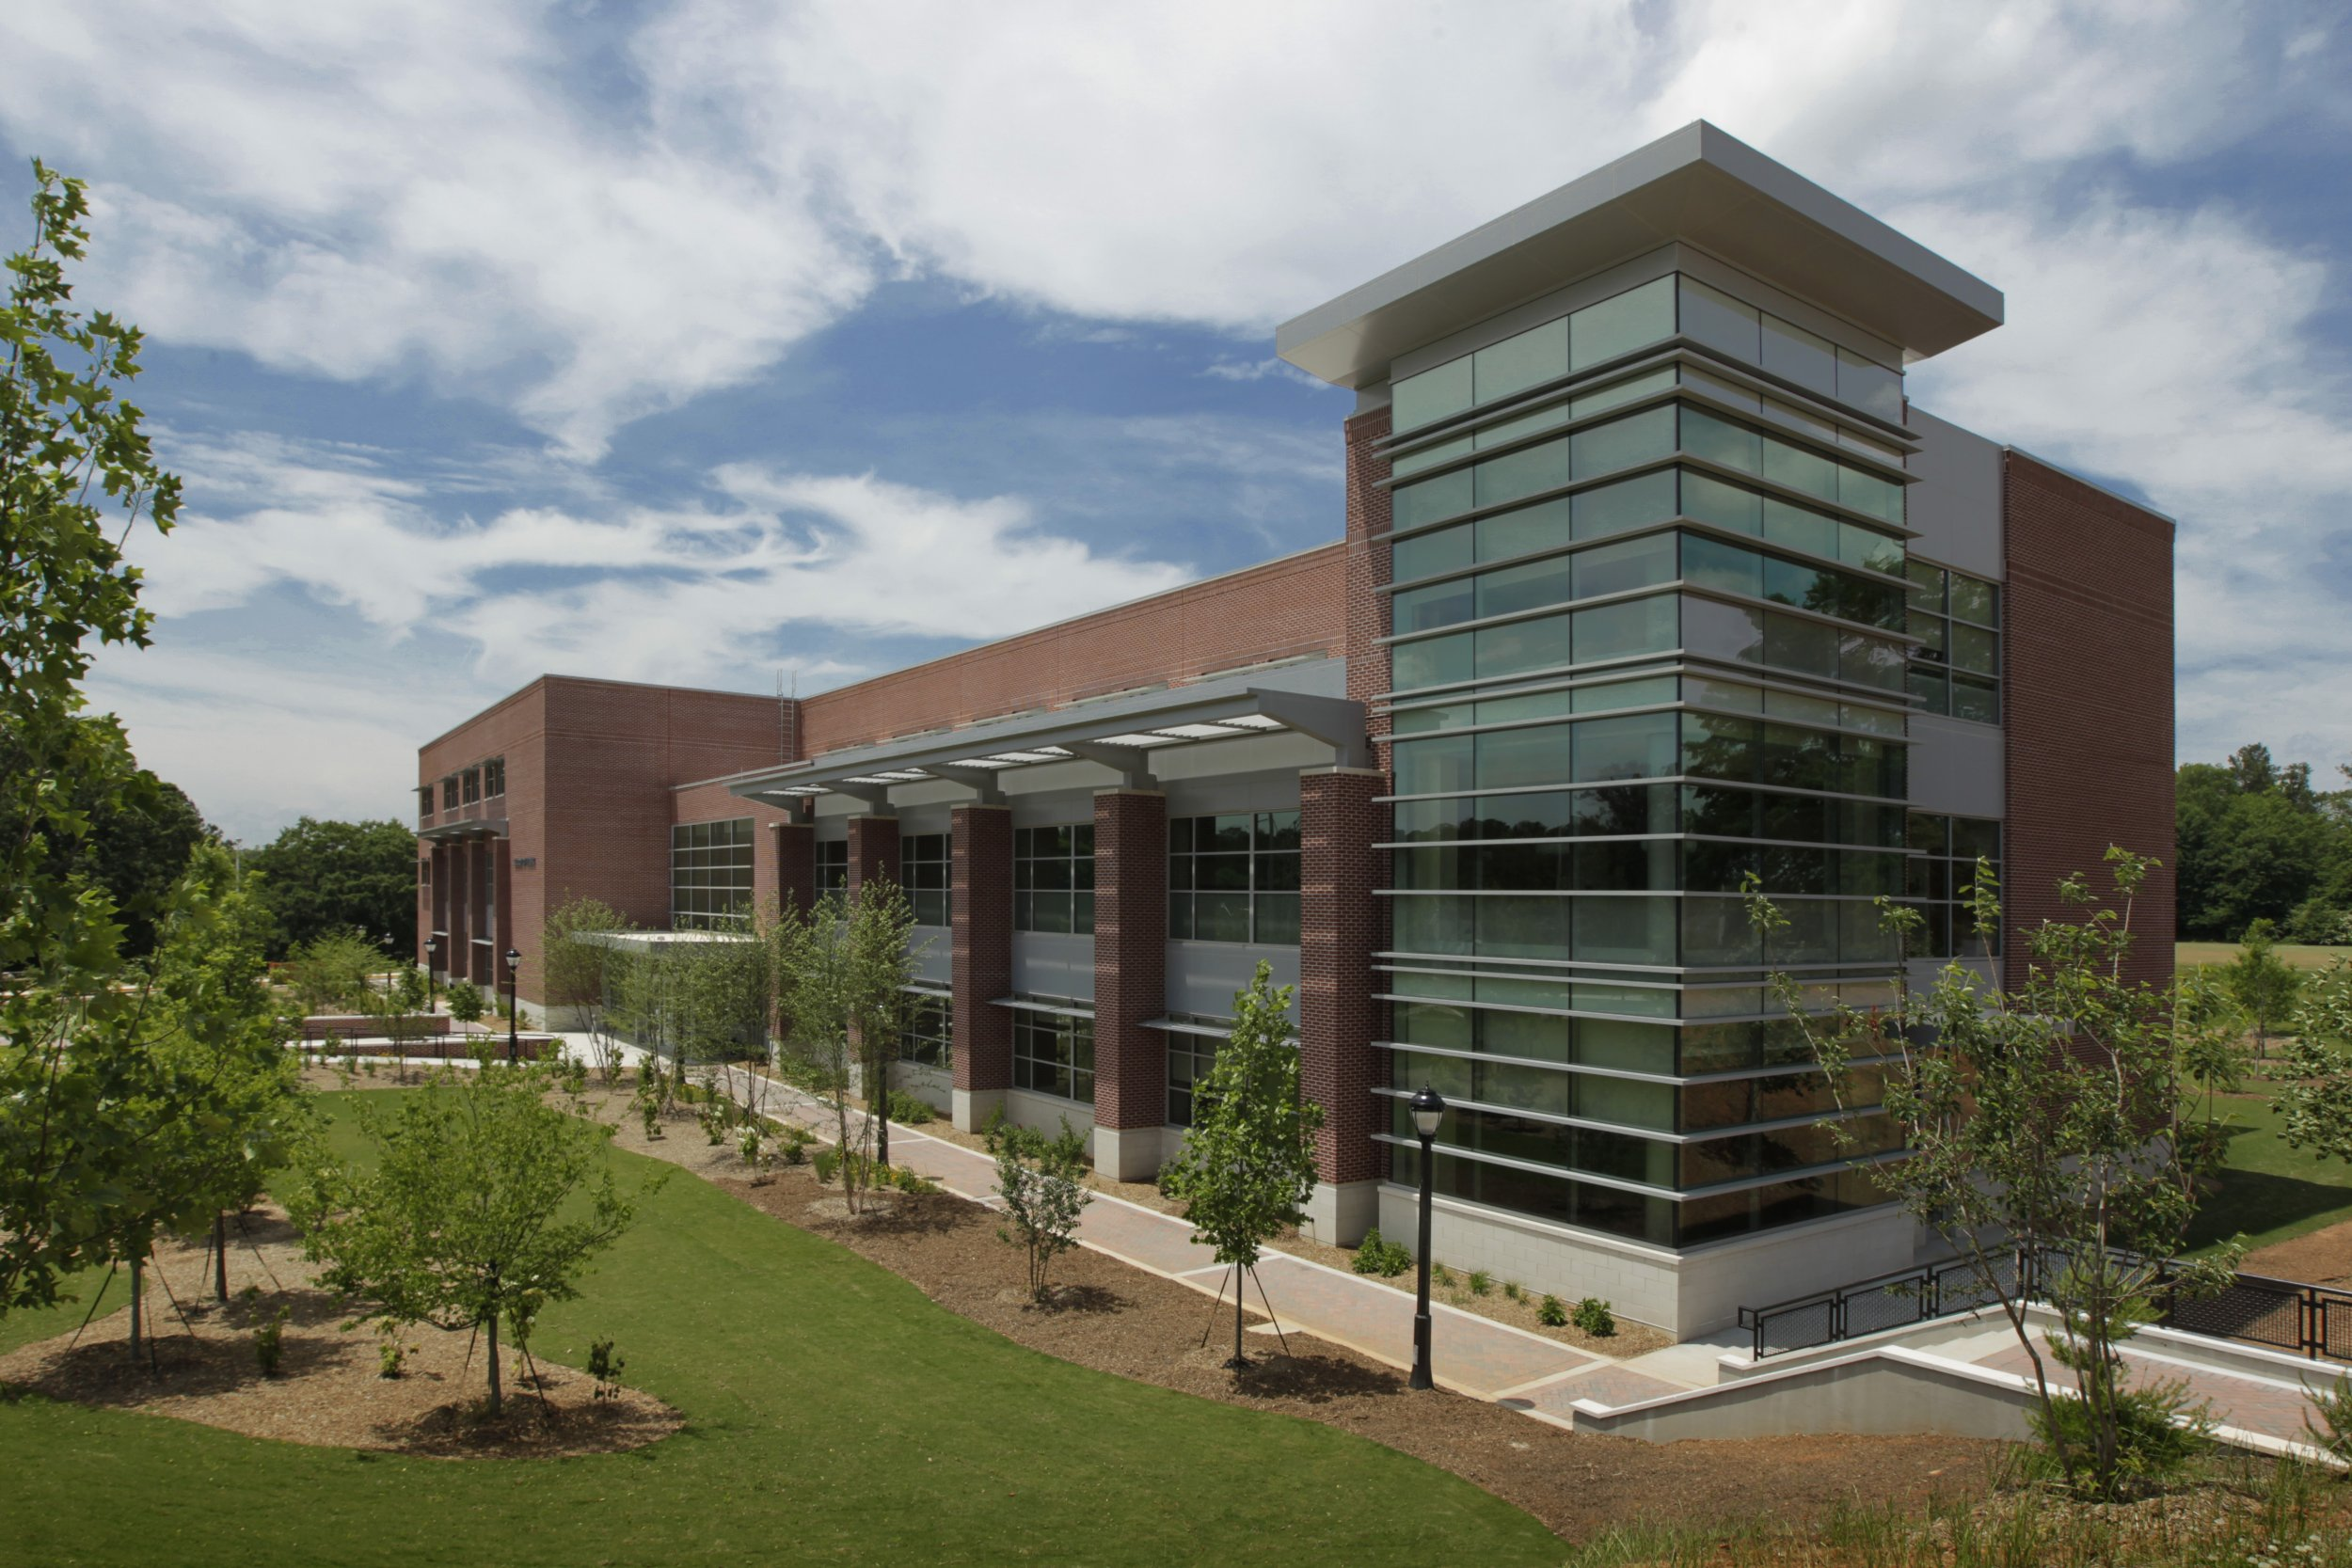 the university of west georgia tanner health system school of nursing